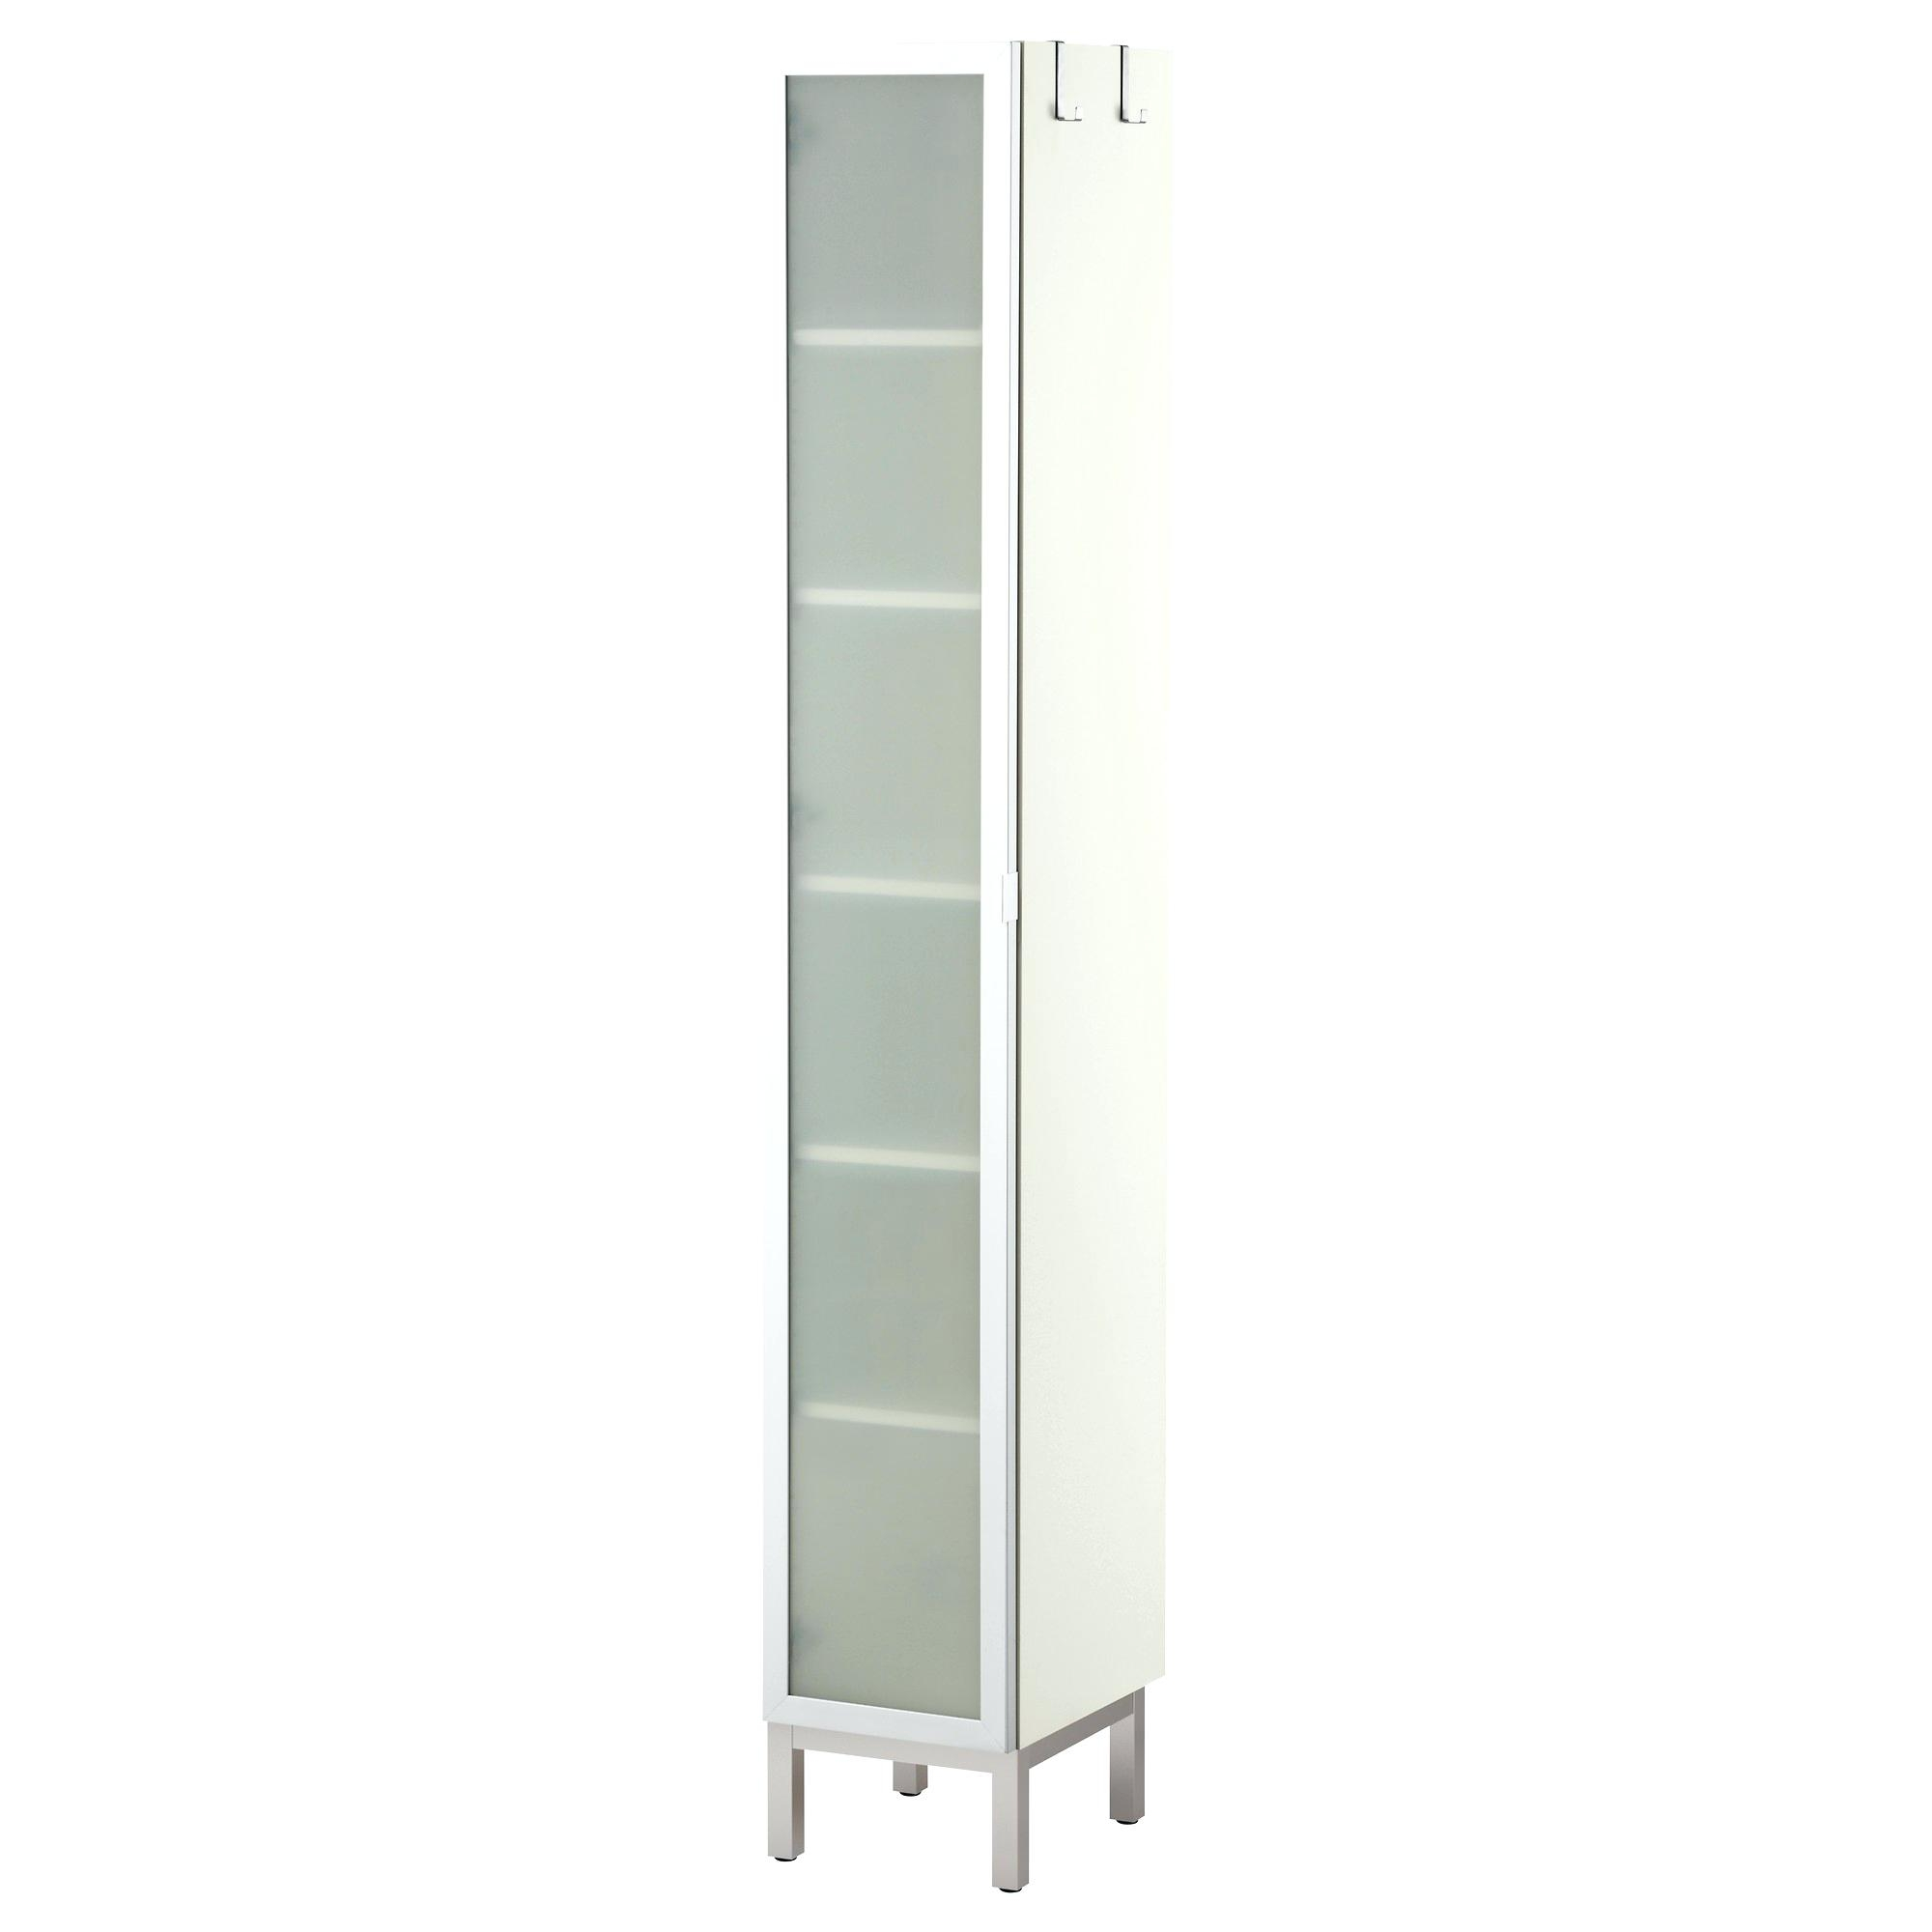 Cheap Sturdy Bookshelves Display Cabinet Shelving Unit Shelves Regarding Free Standing Glass Shelves (View 11 of 12)